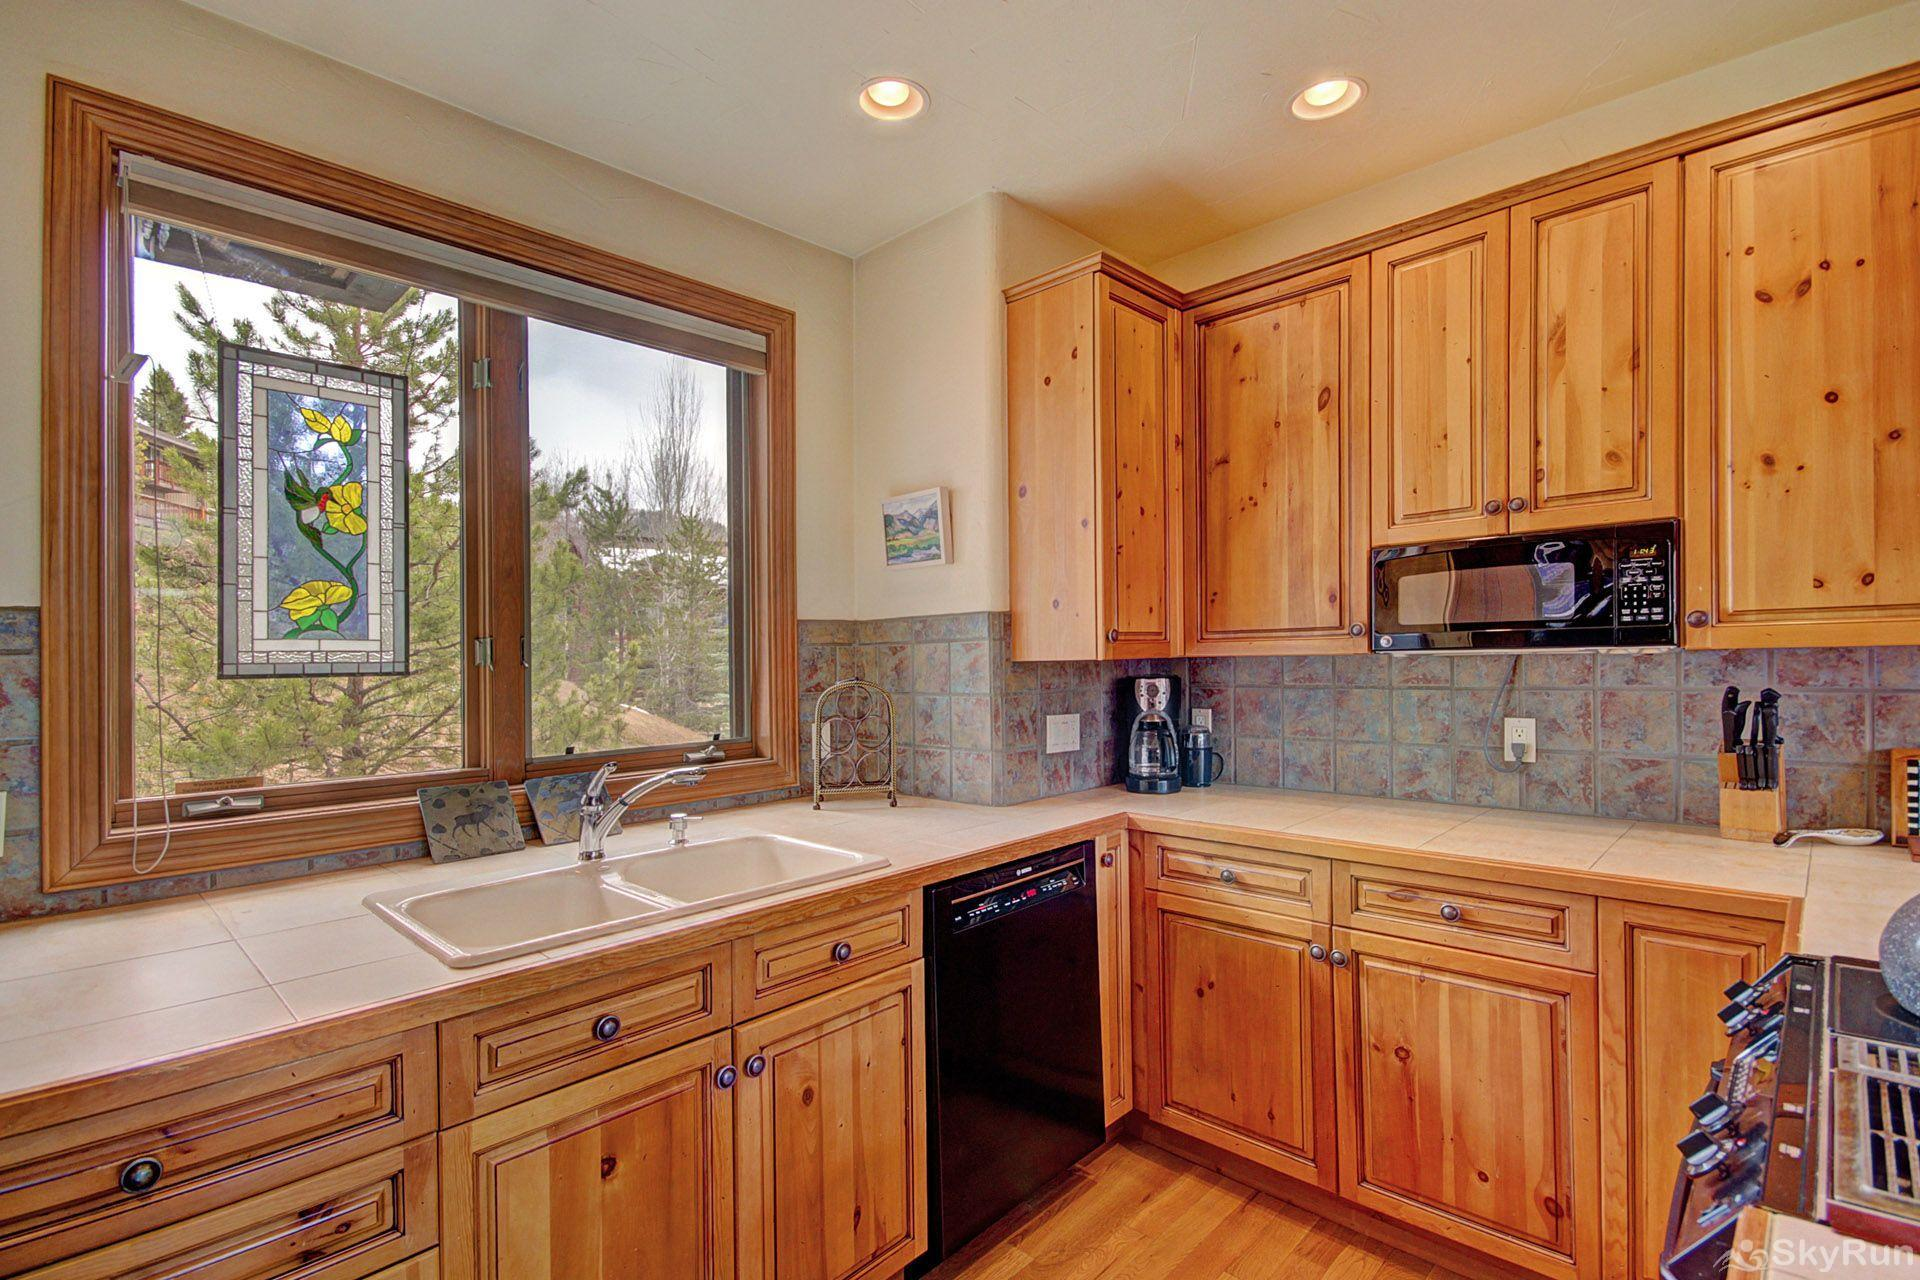 CrossTimbers 2784 This kitchen with a view is full of light and has a double sink, microwave, stove, dishwasher and oven.